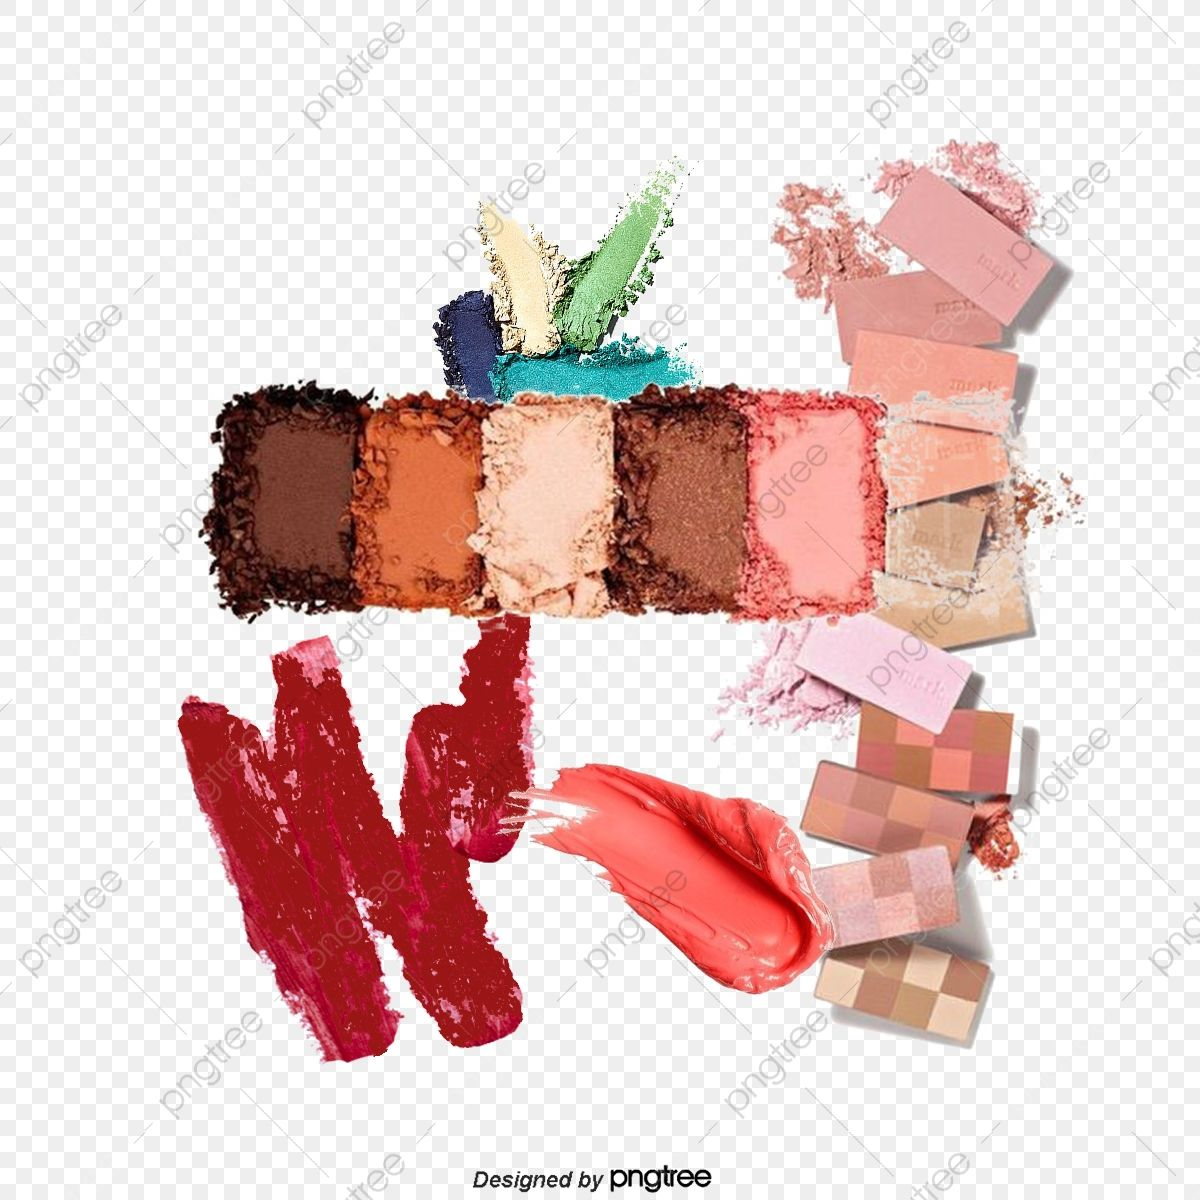 Powder Makeup Powder Make Up Beauty Png Transparent Clipart Image And Psd File For Free Download Powder Makeup Makeup Clipart Clip Art